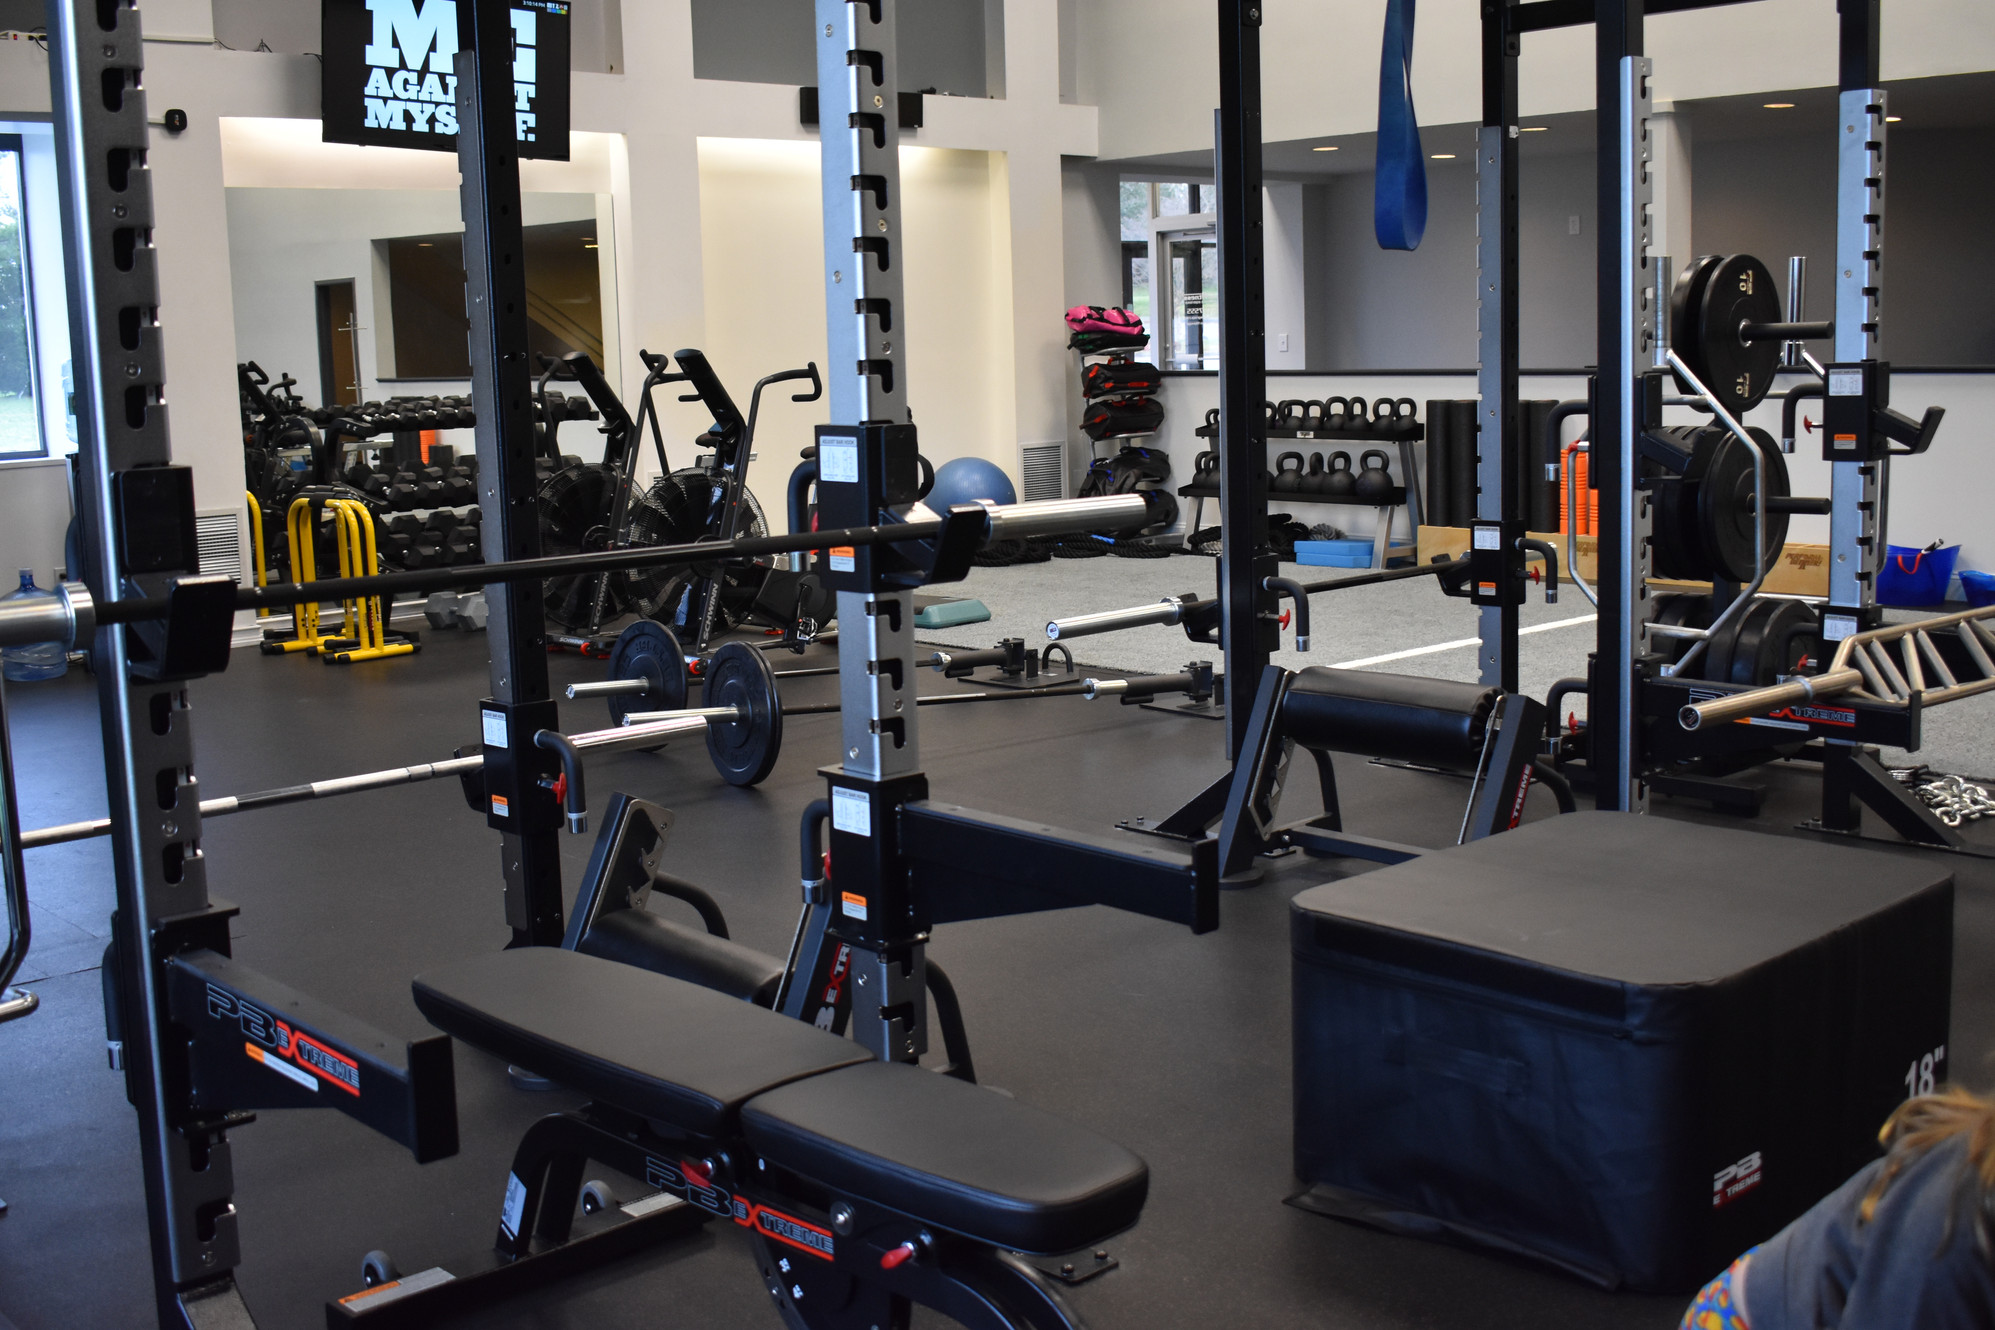 About Premier Fitness